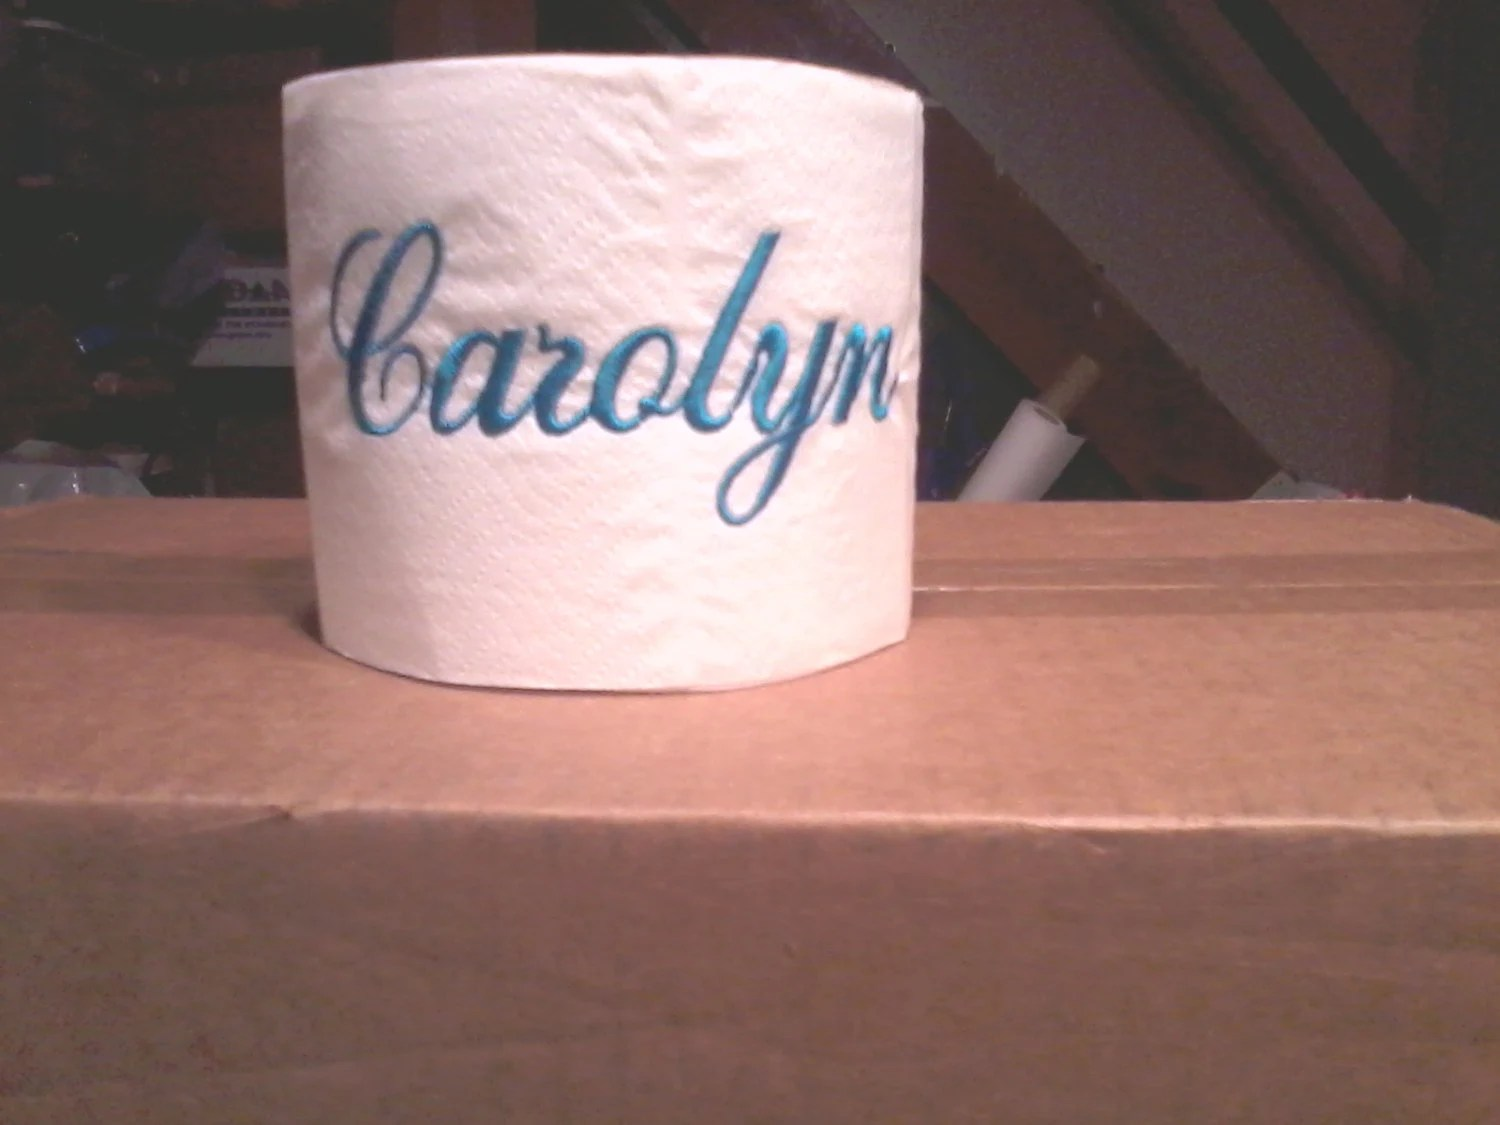 Custom Made Toilet Paper Embroidered Personalized Toilet Paper With Name Or Monogram